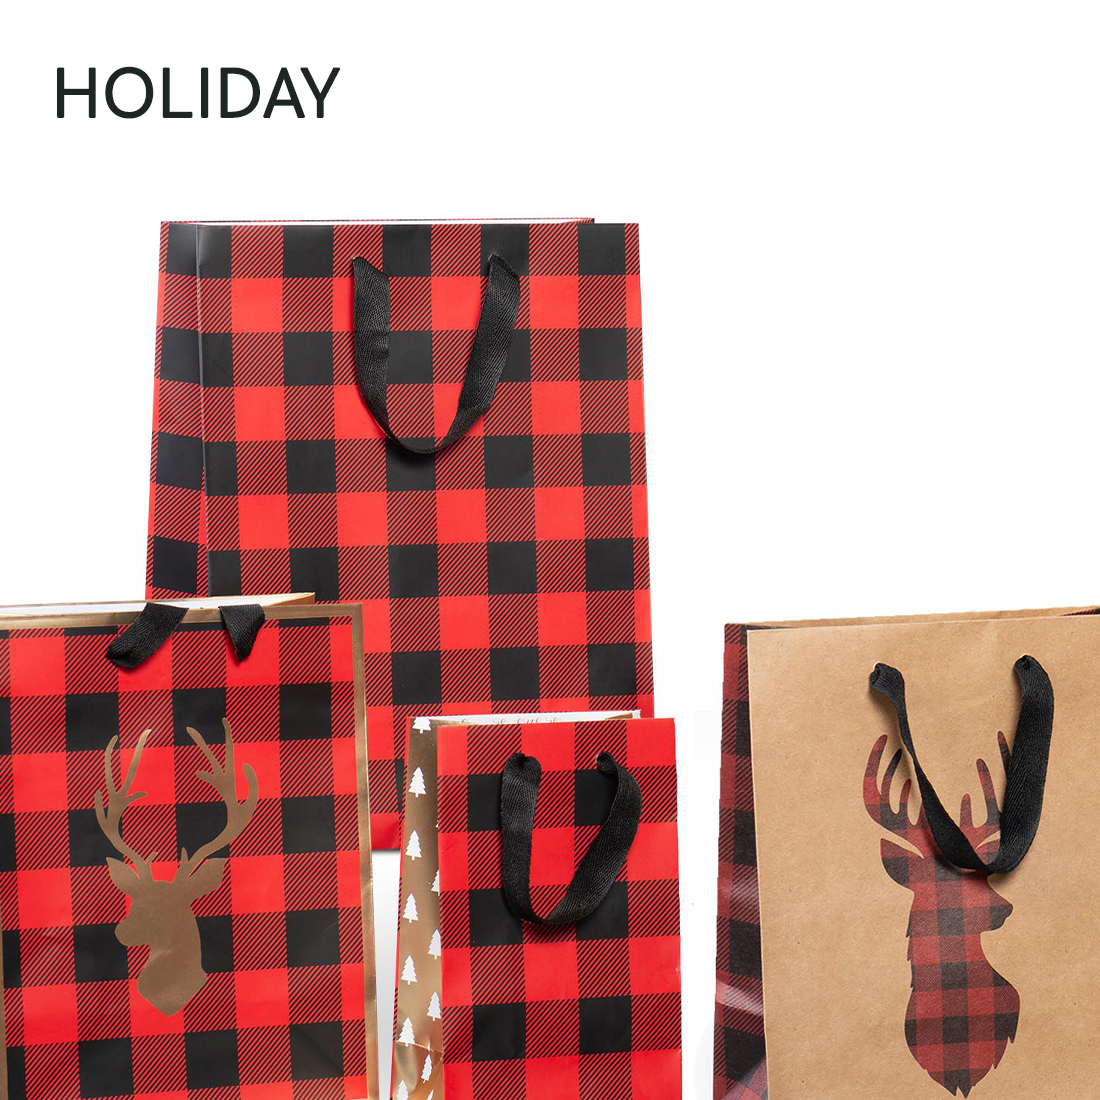 holiday-large-square.jpg